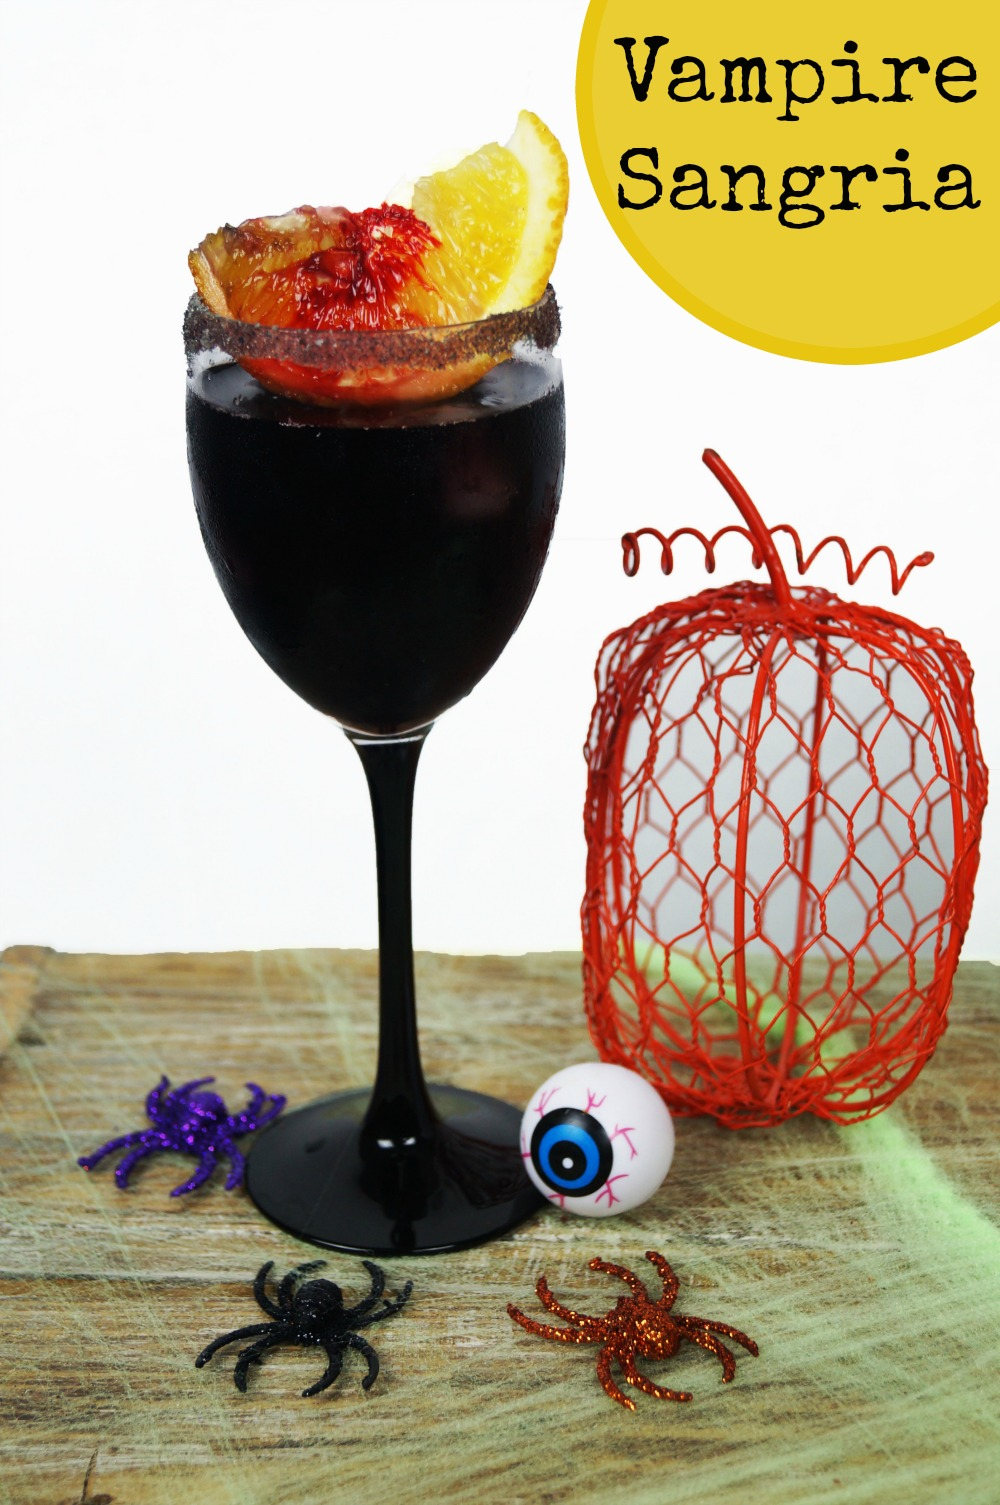 Make this easy Vampire Sangria cocktail that's perfect for Halloween. Not too spooky, and can be made in a batch for a party.